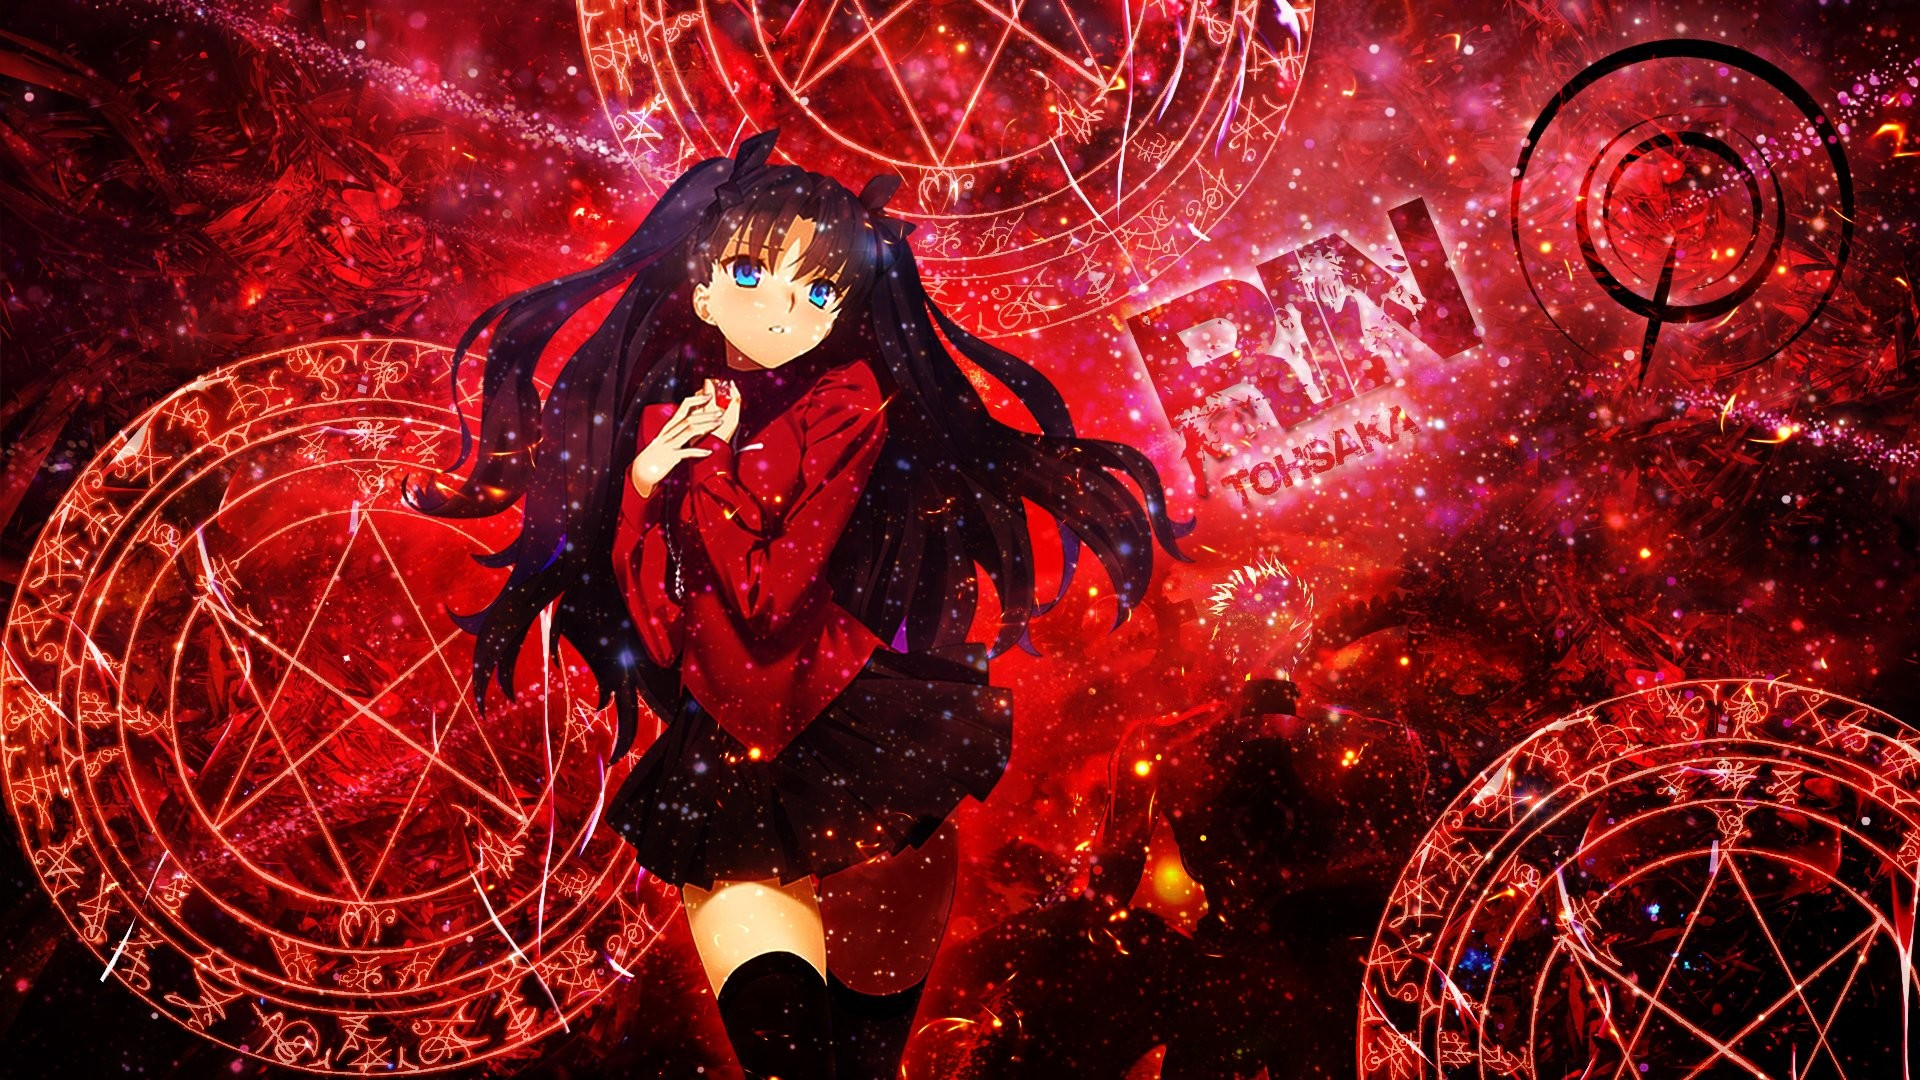 1920x1080 ... Unlimited Blade Works Rin Tohsaka · HD Wallpaper | Background ID:629534